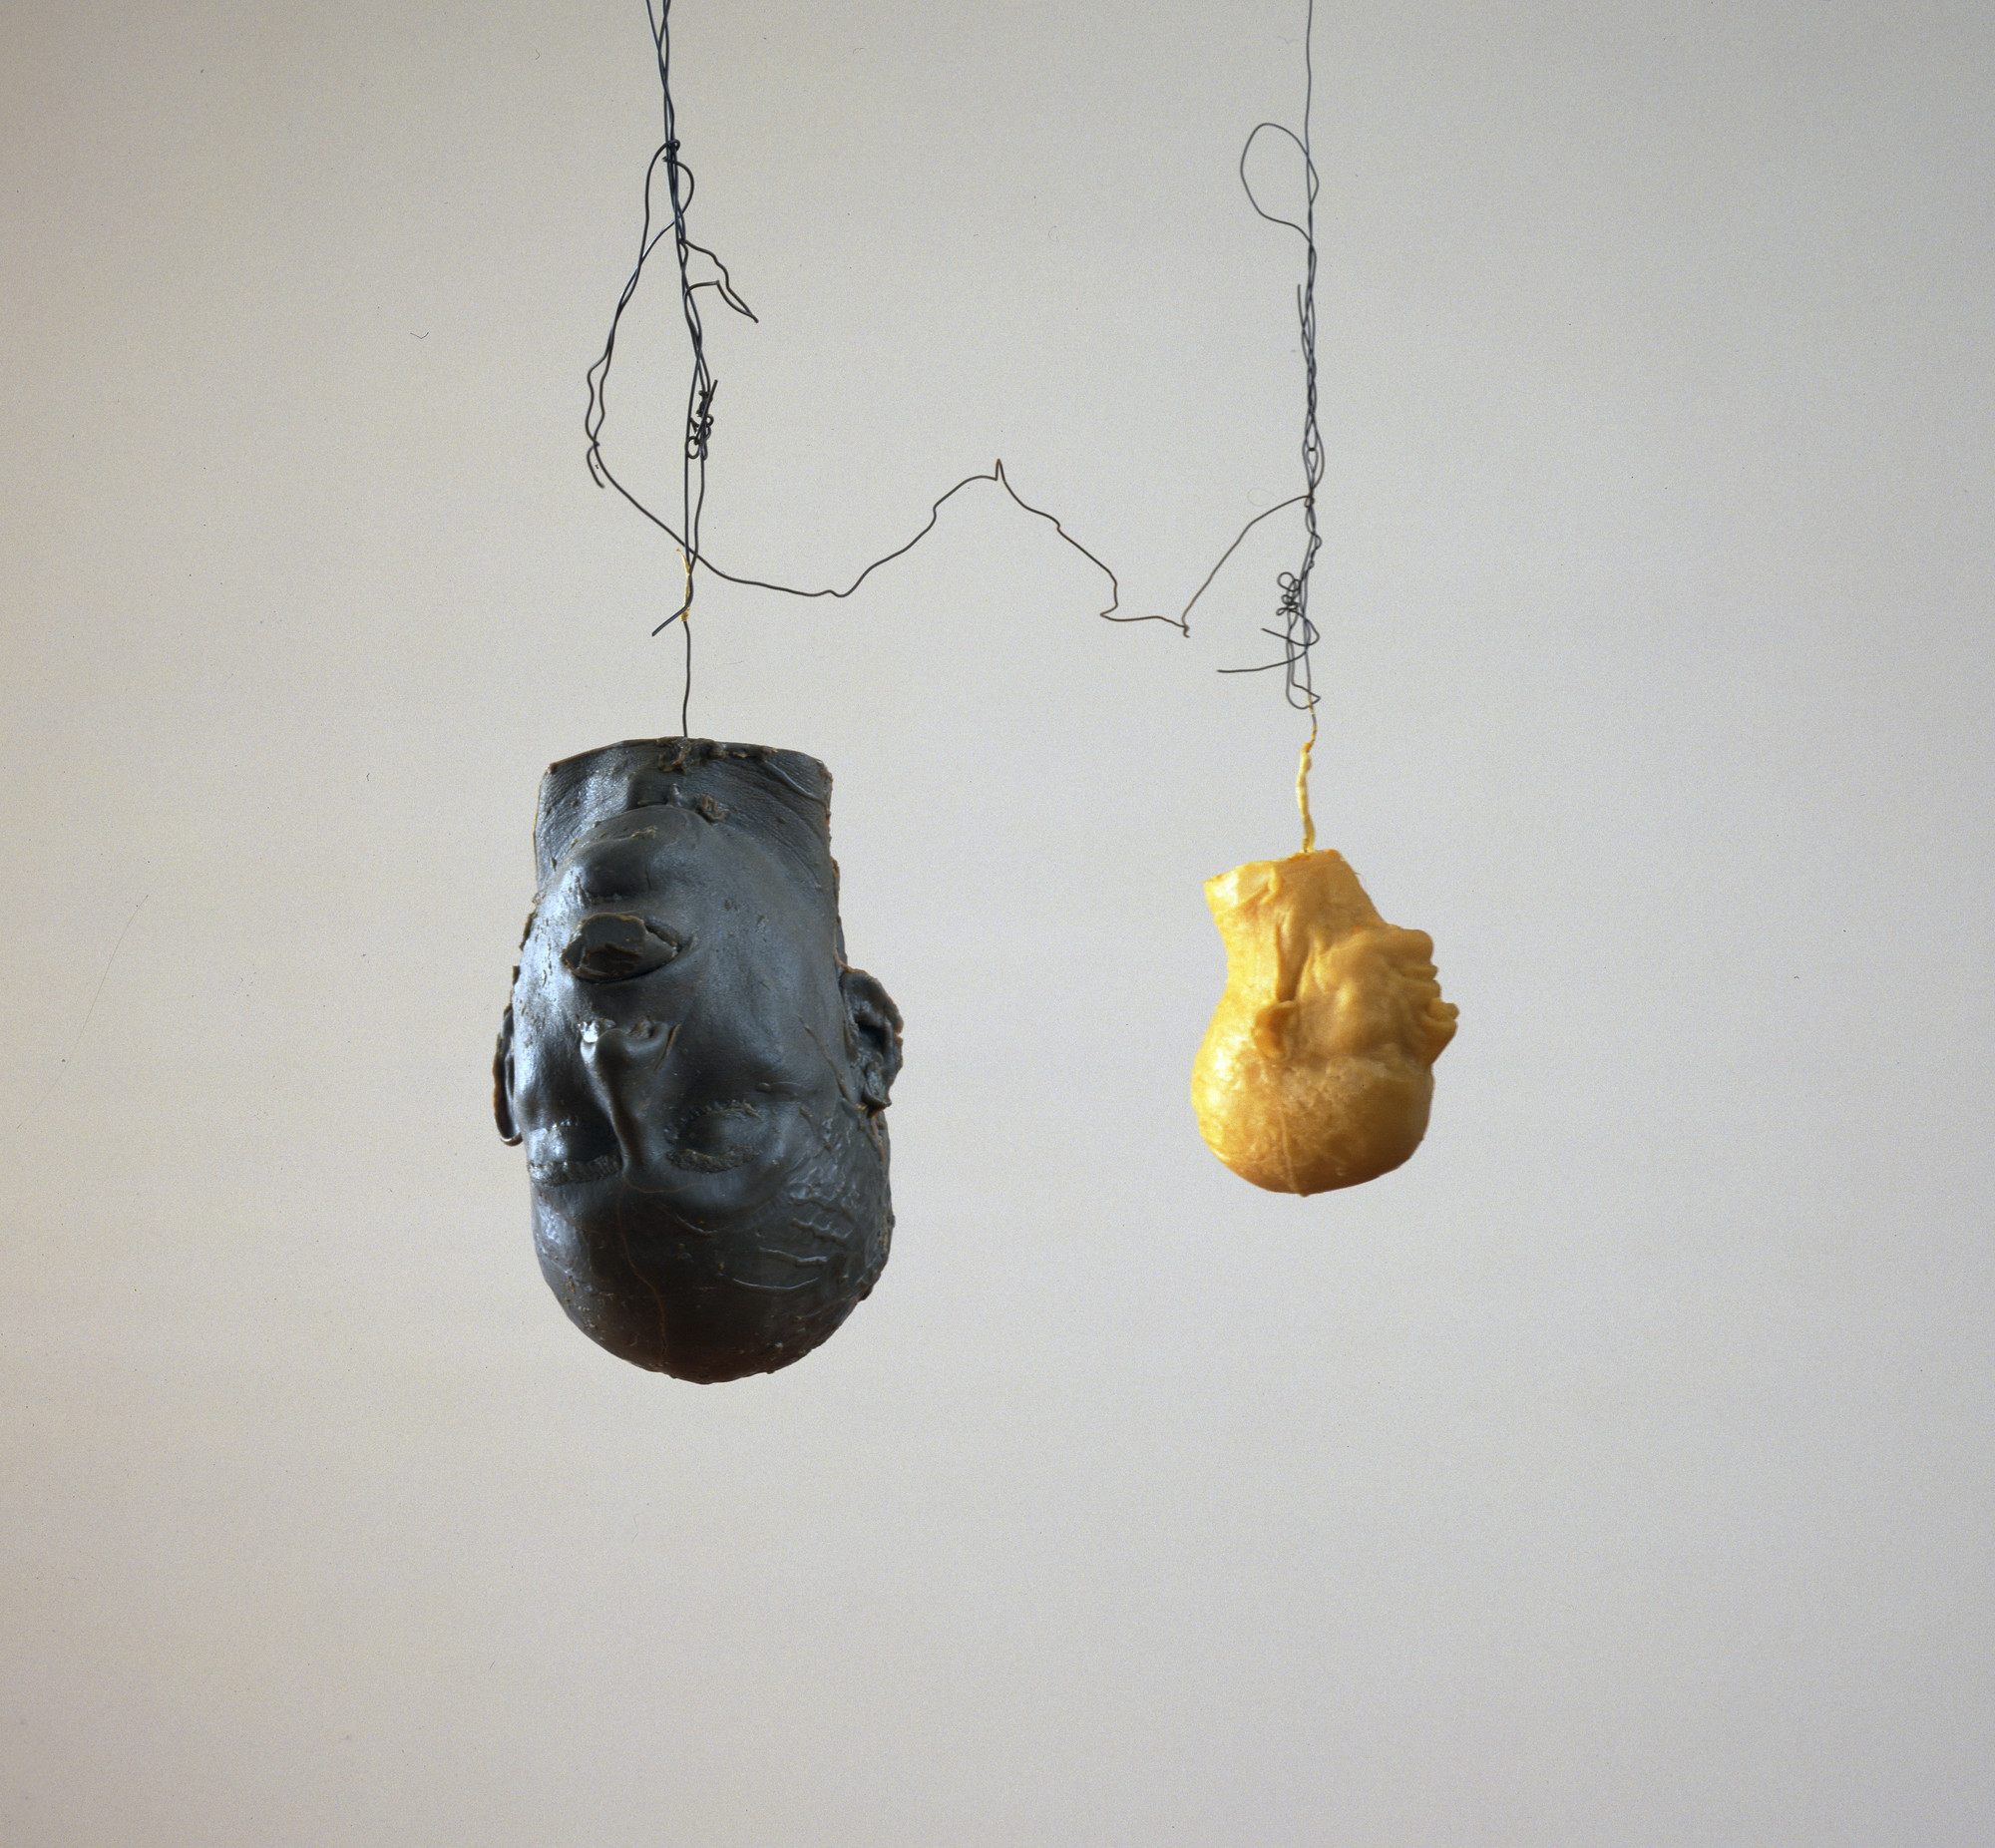 Bruce Nauman. Hanging Heads #2 (Blue Andrew with Plug/White Julie, Mouth Closed). 1989